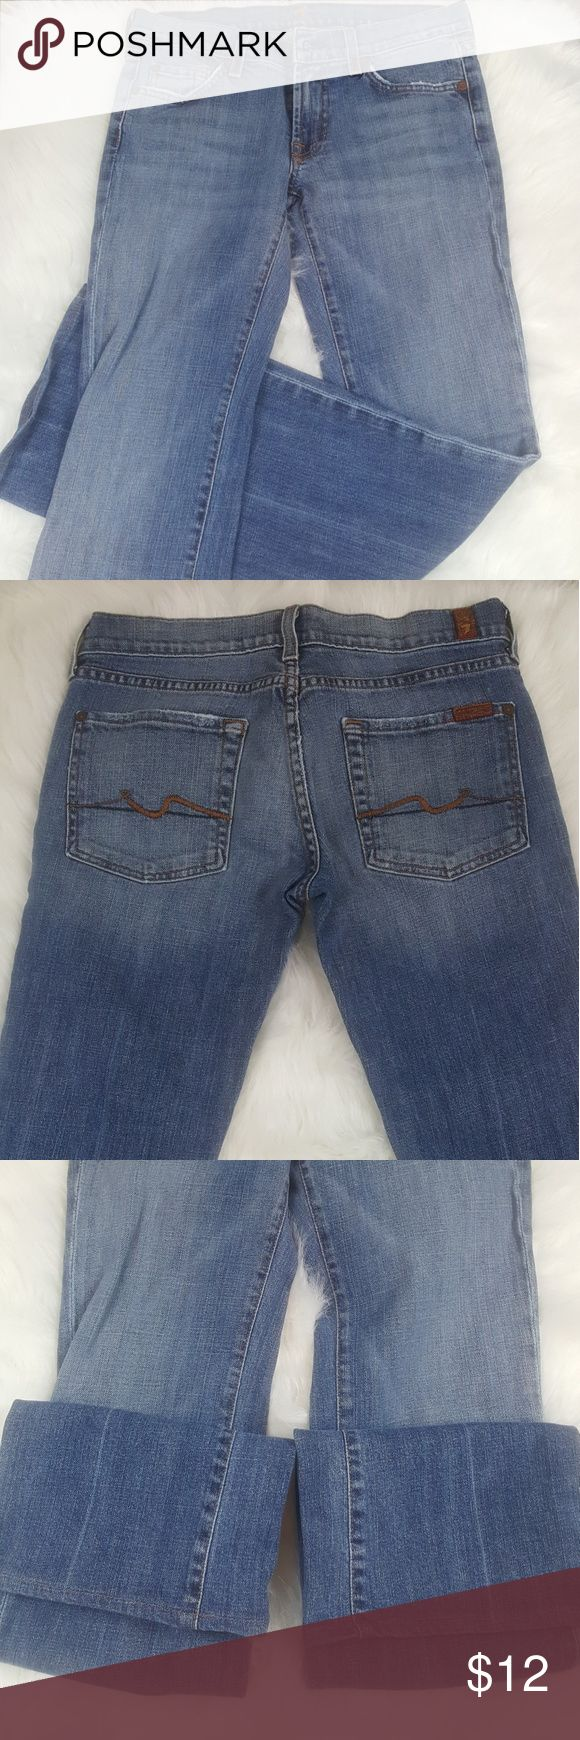 7 For All Mankind Women's Jeans Size 27 Womens light blue denim jeans 7 For All Mankind brand. Size 27 Boot Cut style. Small stain on right knee as pictured. In great condition other than that.  Measurements:  Waist: 30 inch  Hips: 17 inches Inseam: 32 1/2 inches Rise: 8 inches Cuffs: 9 inches 7 For All Mankind Jeans Boot Cut